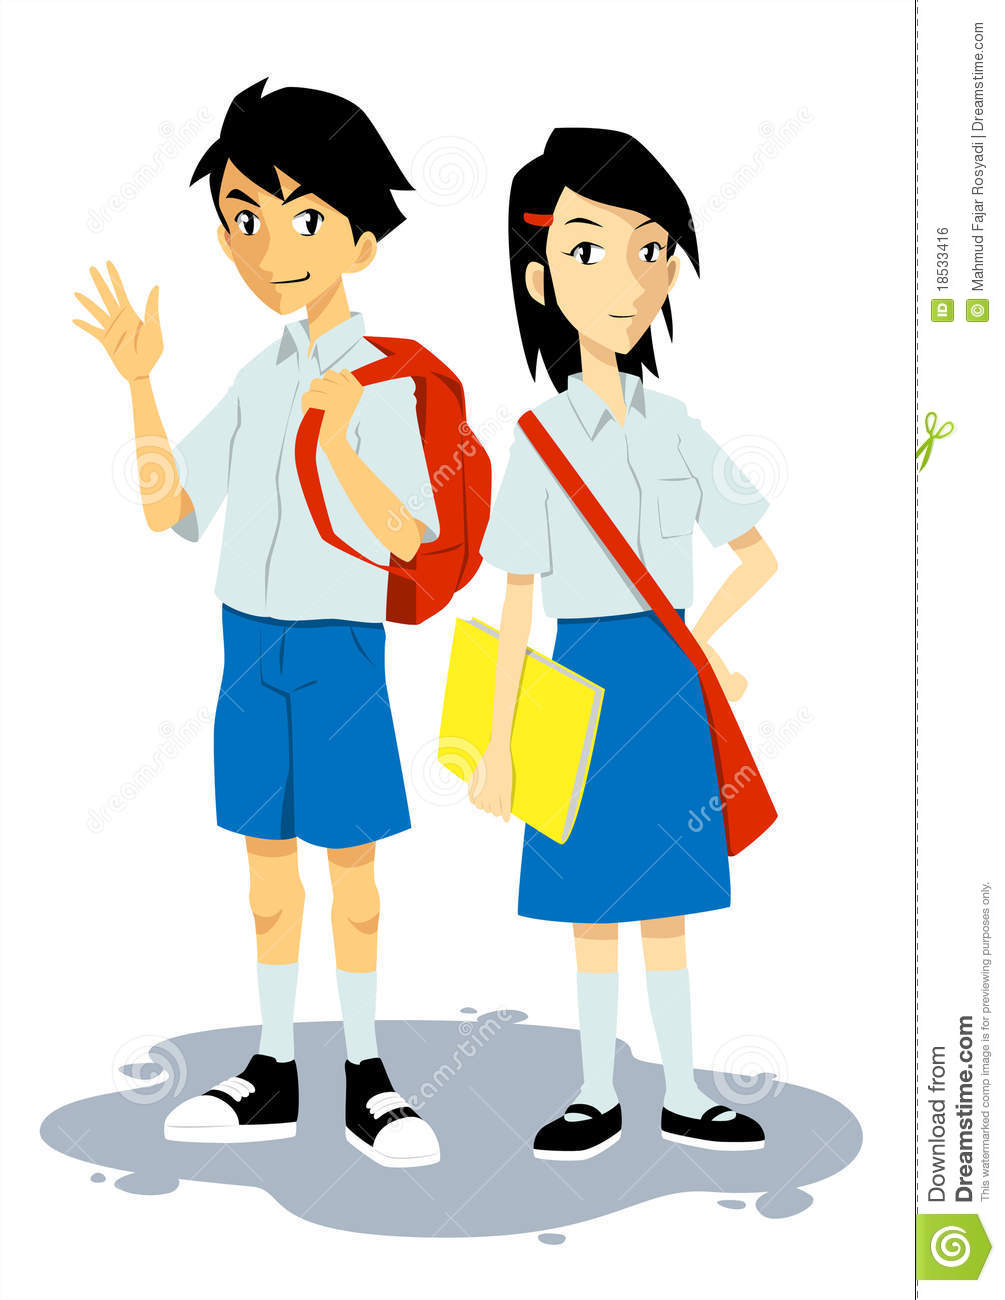 Uniform Clipart-uniform clipart-13